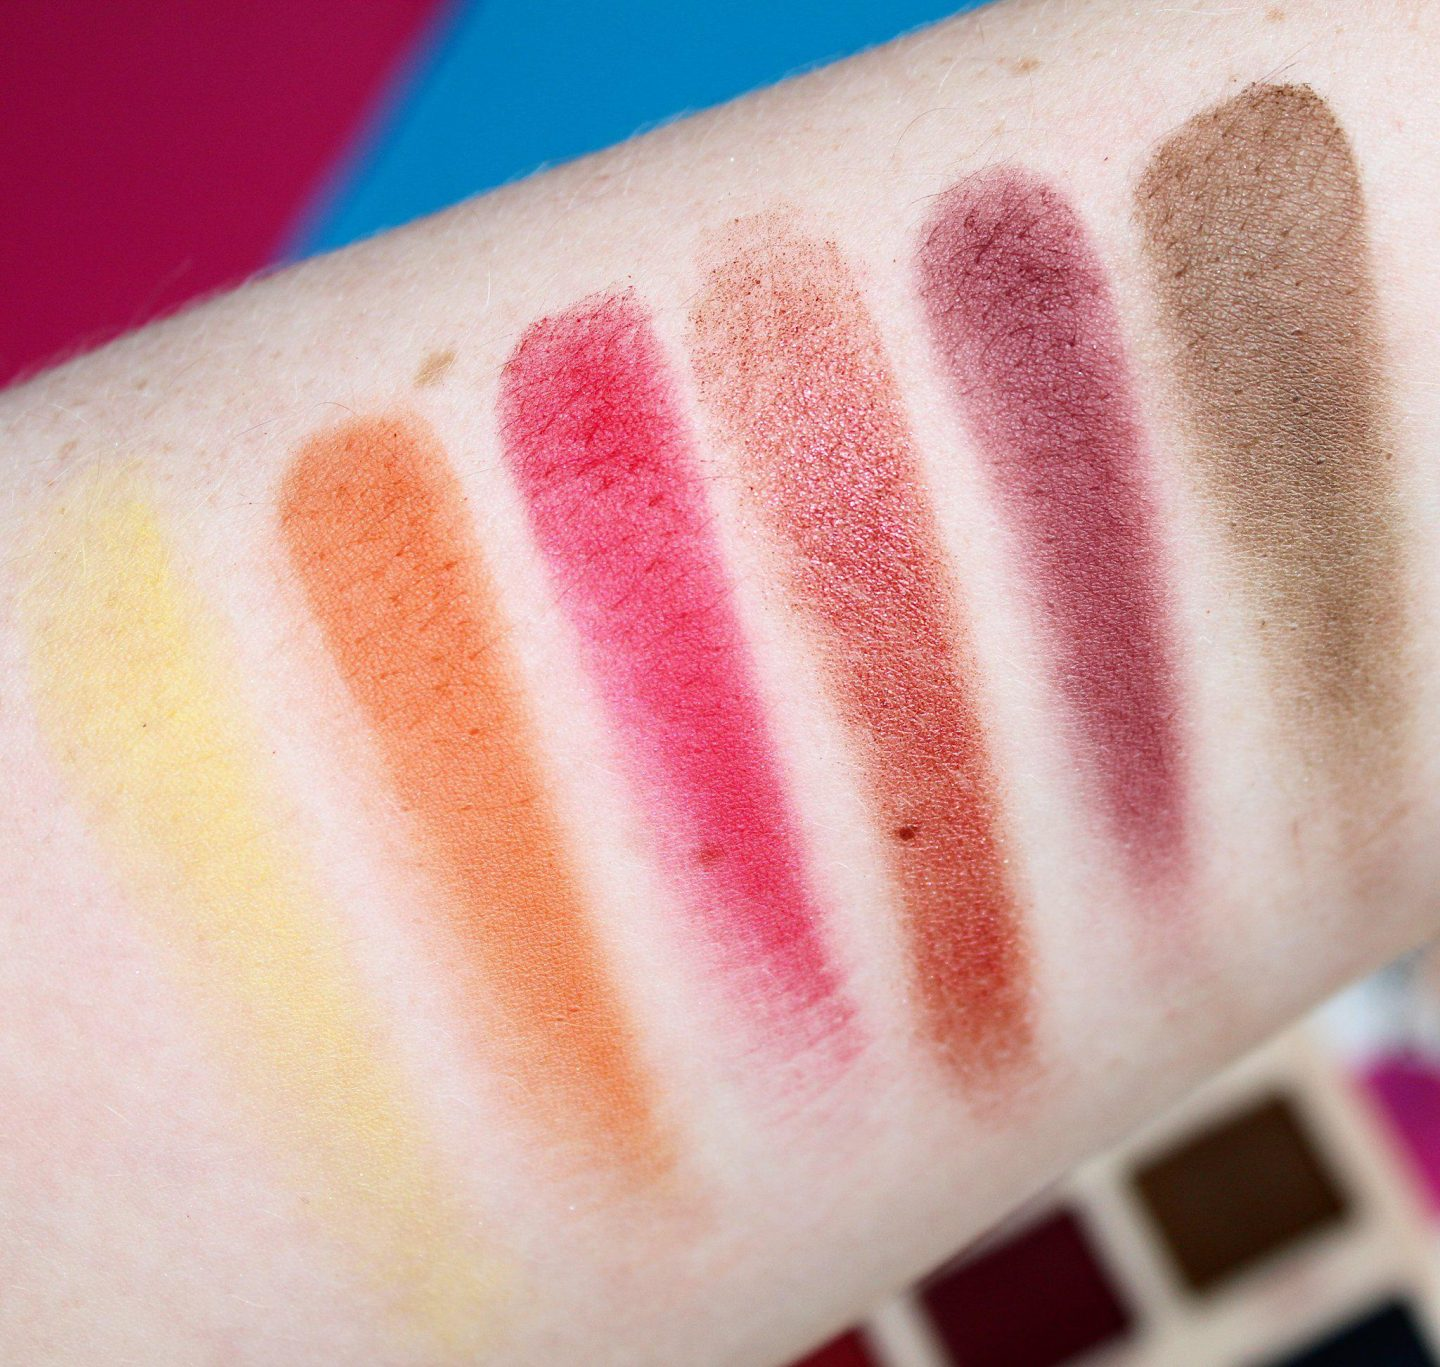 Revolution X Soph Extra Spice Ultra Eyeshadow Palette | Review & Swatches